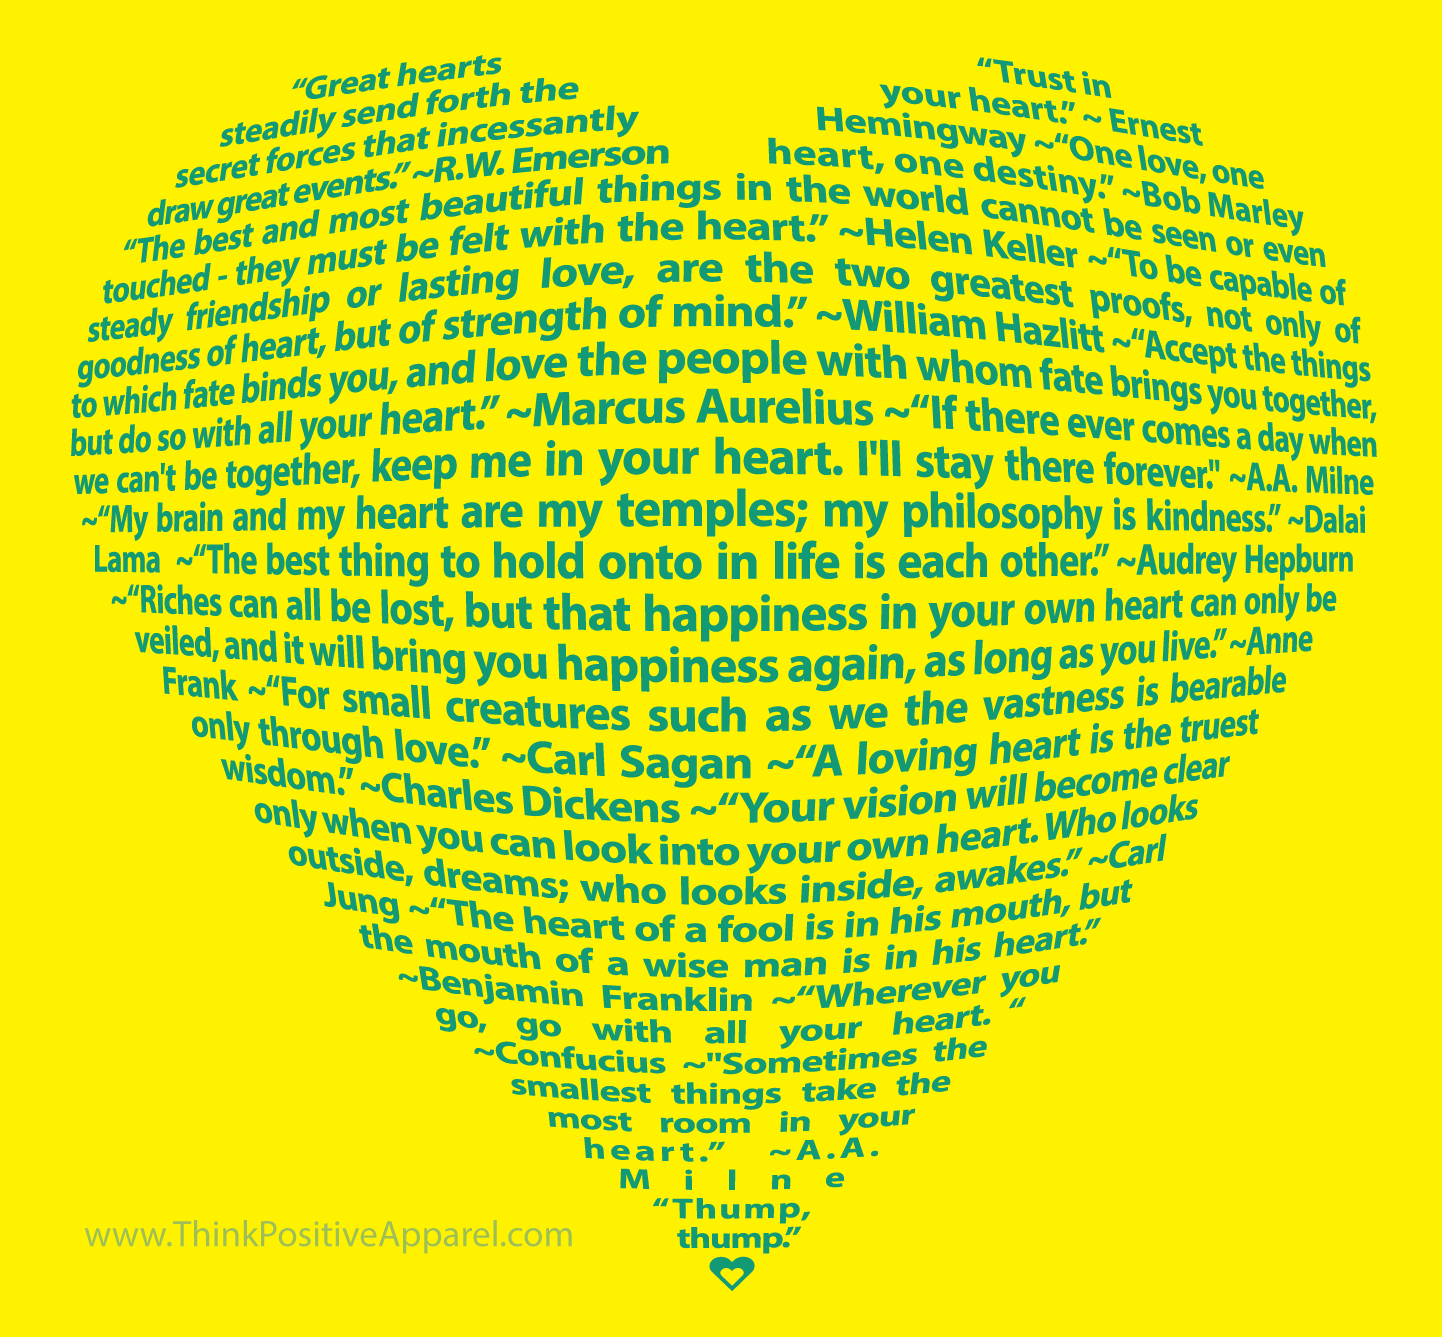 Big Heart Design Made Entirely Of Quotations About Heart Think